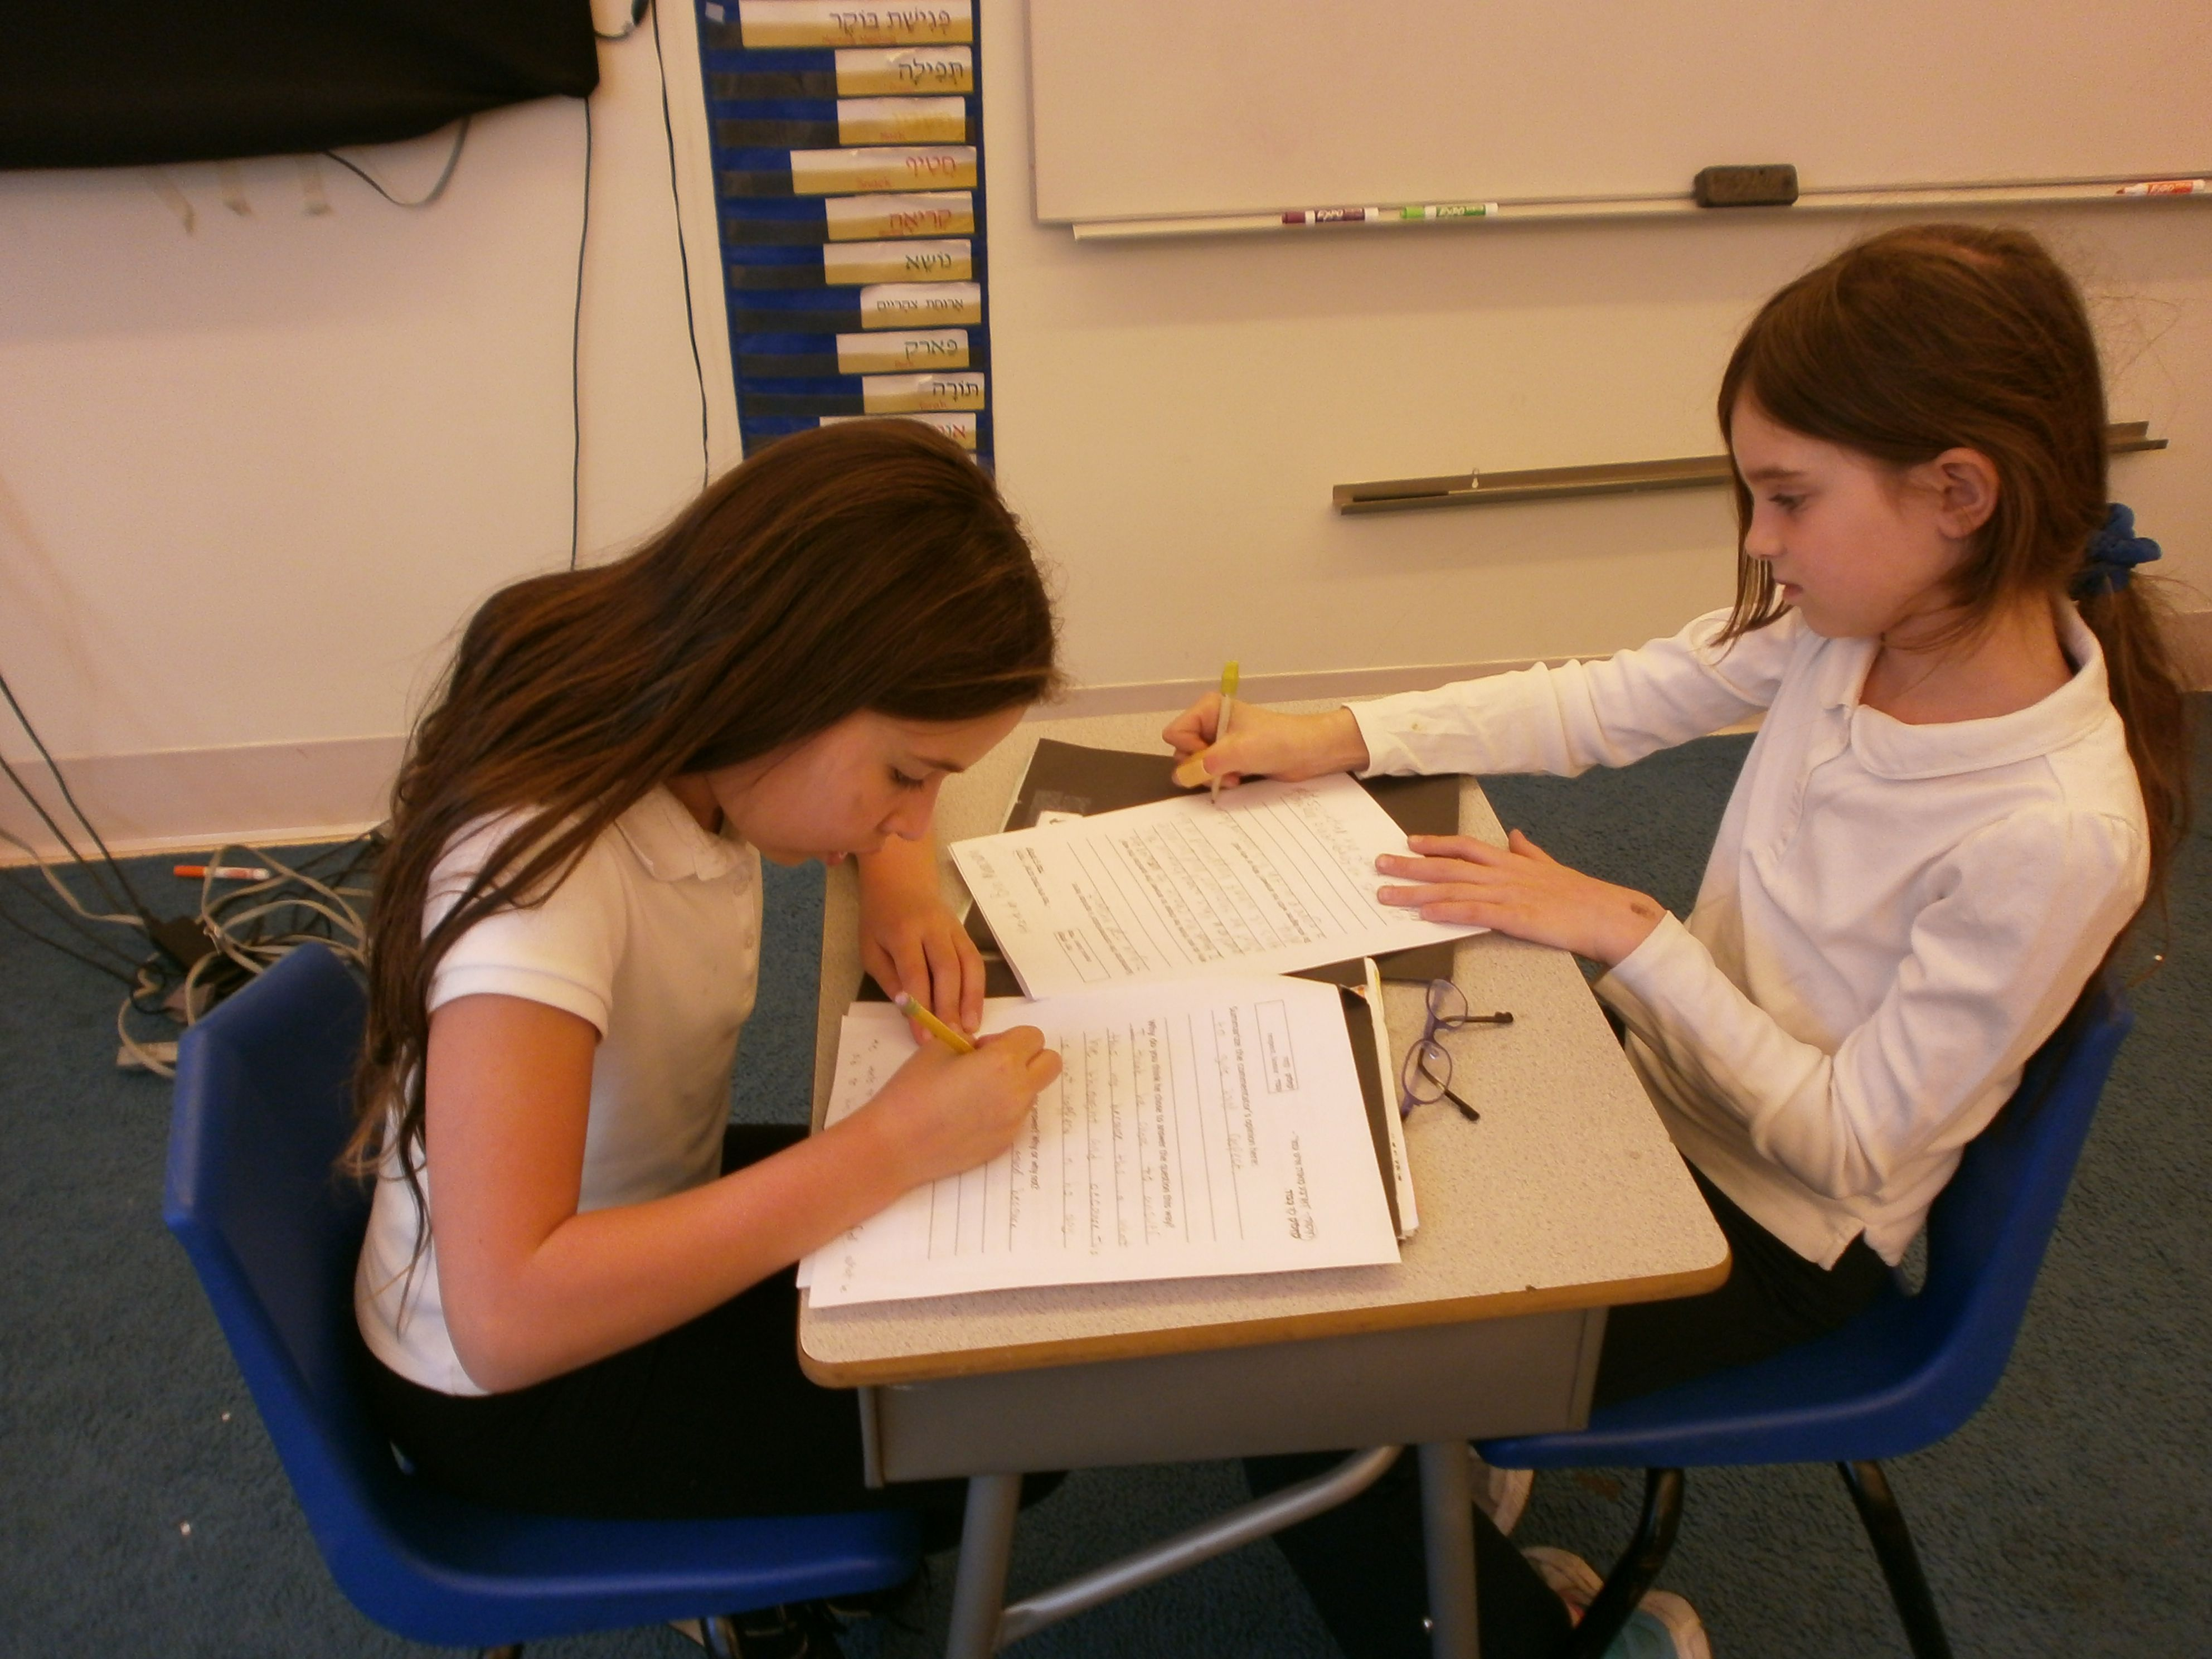 Students Work In Chevrutot As They Are Introduced For The First Time To Parshanut Torah Commentary Student Work Student Drafting Desk